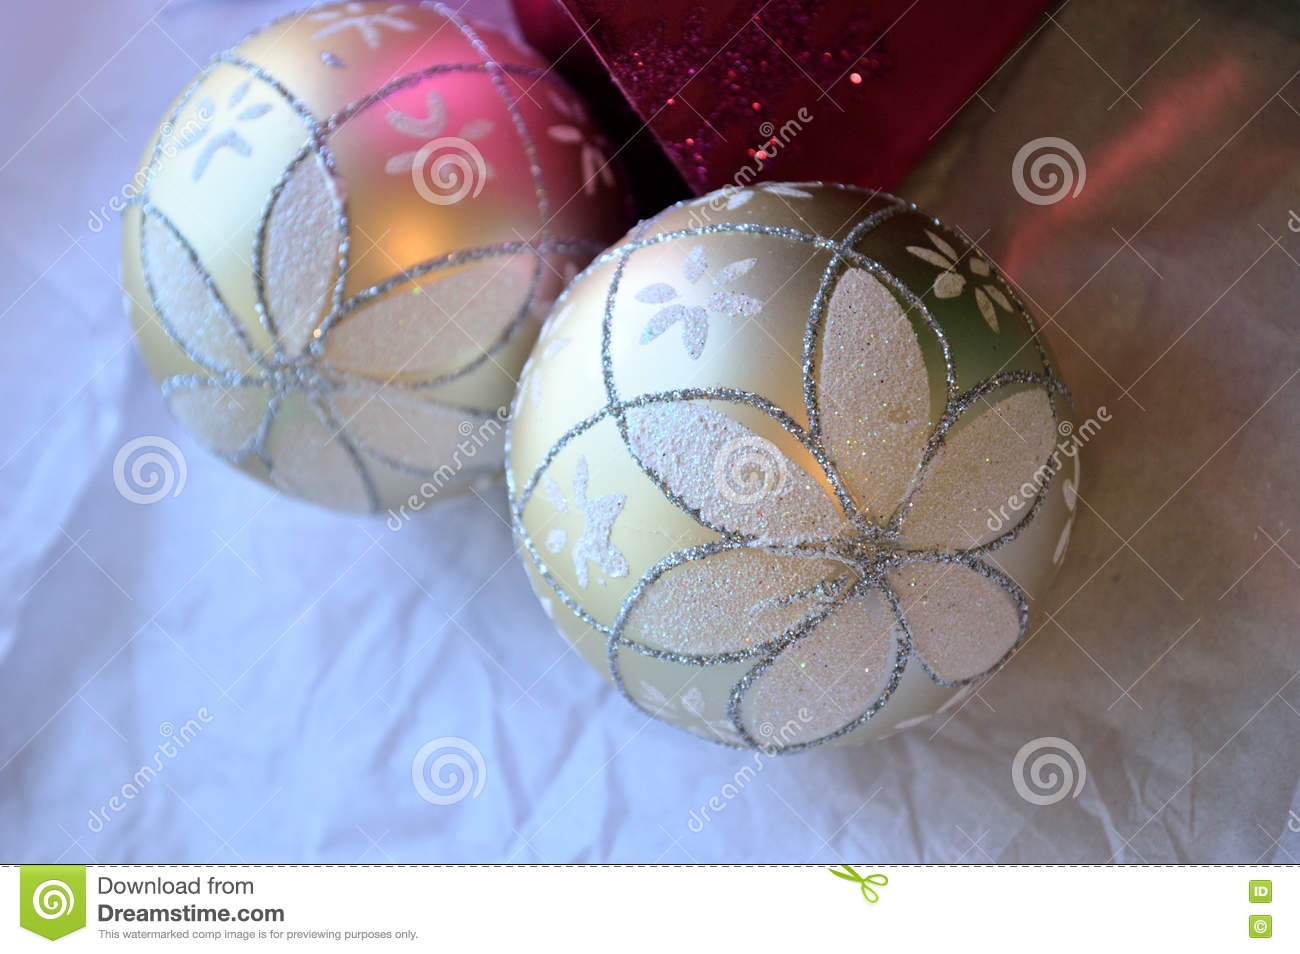 Glittery Christmas ornament background, pink and white